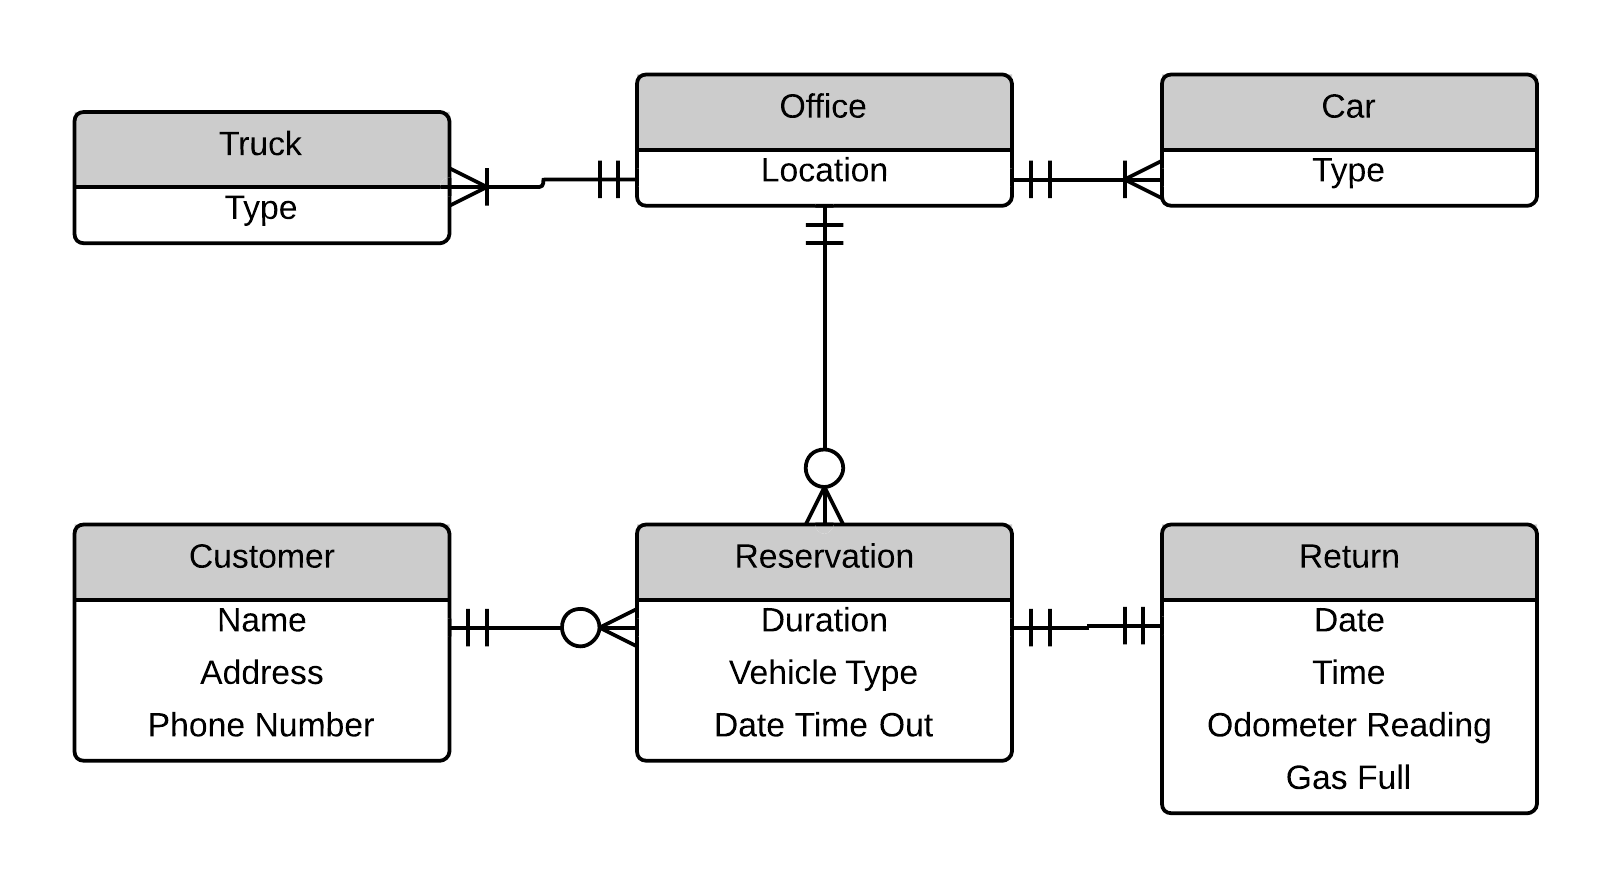 hight resolution of car rental entity relationship diagram example